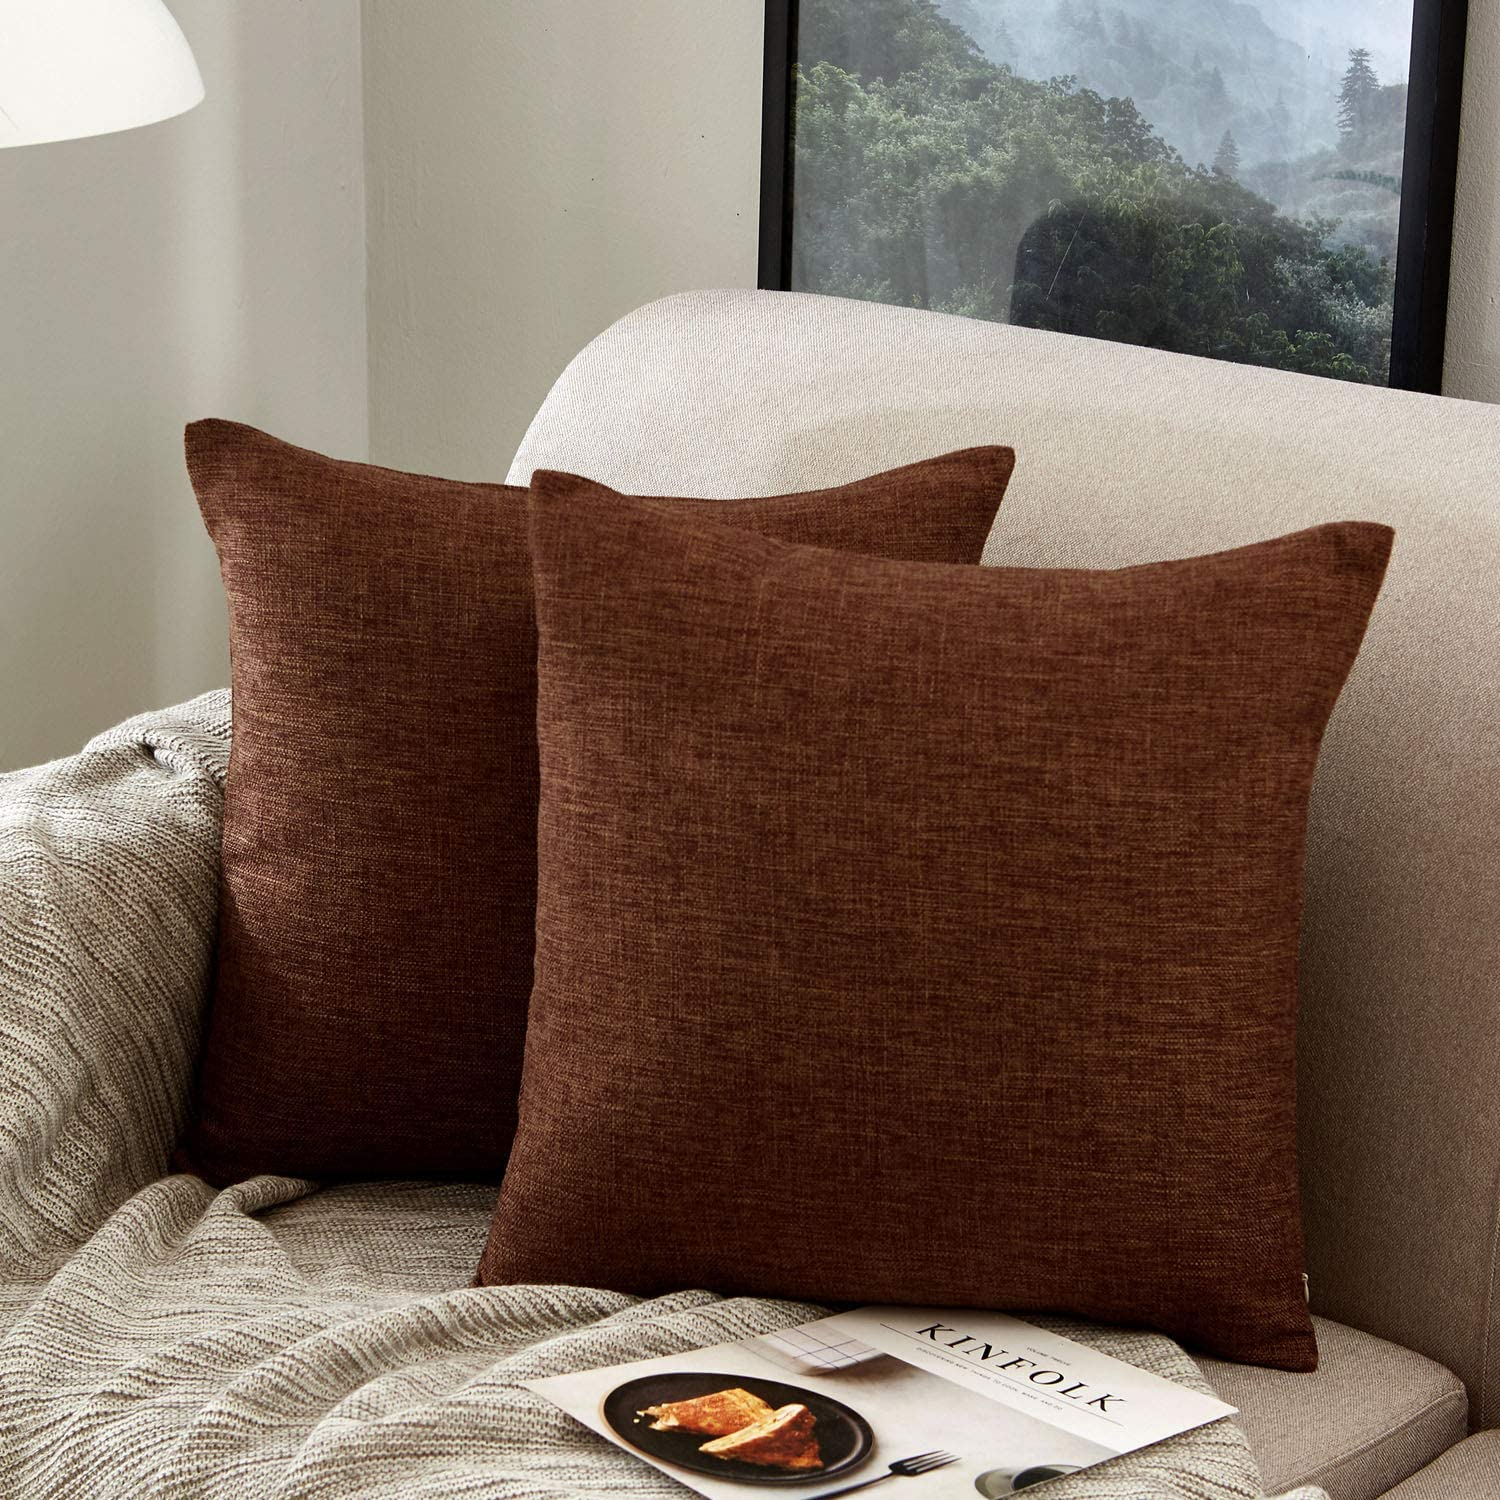 MERNETTE Pack of 2, Cotton Linen Blend Decorative Square Throw Pillow Cover Cushion Covers Pillowcase, Home Decor Decorations for Sofa Couch Bed Chair 18x18 Inch/45x45 cm (Dark Brown)